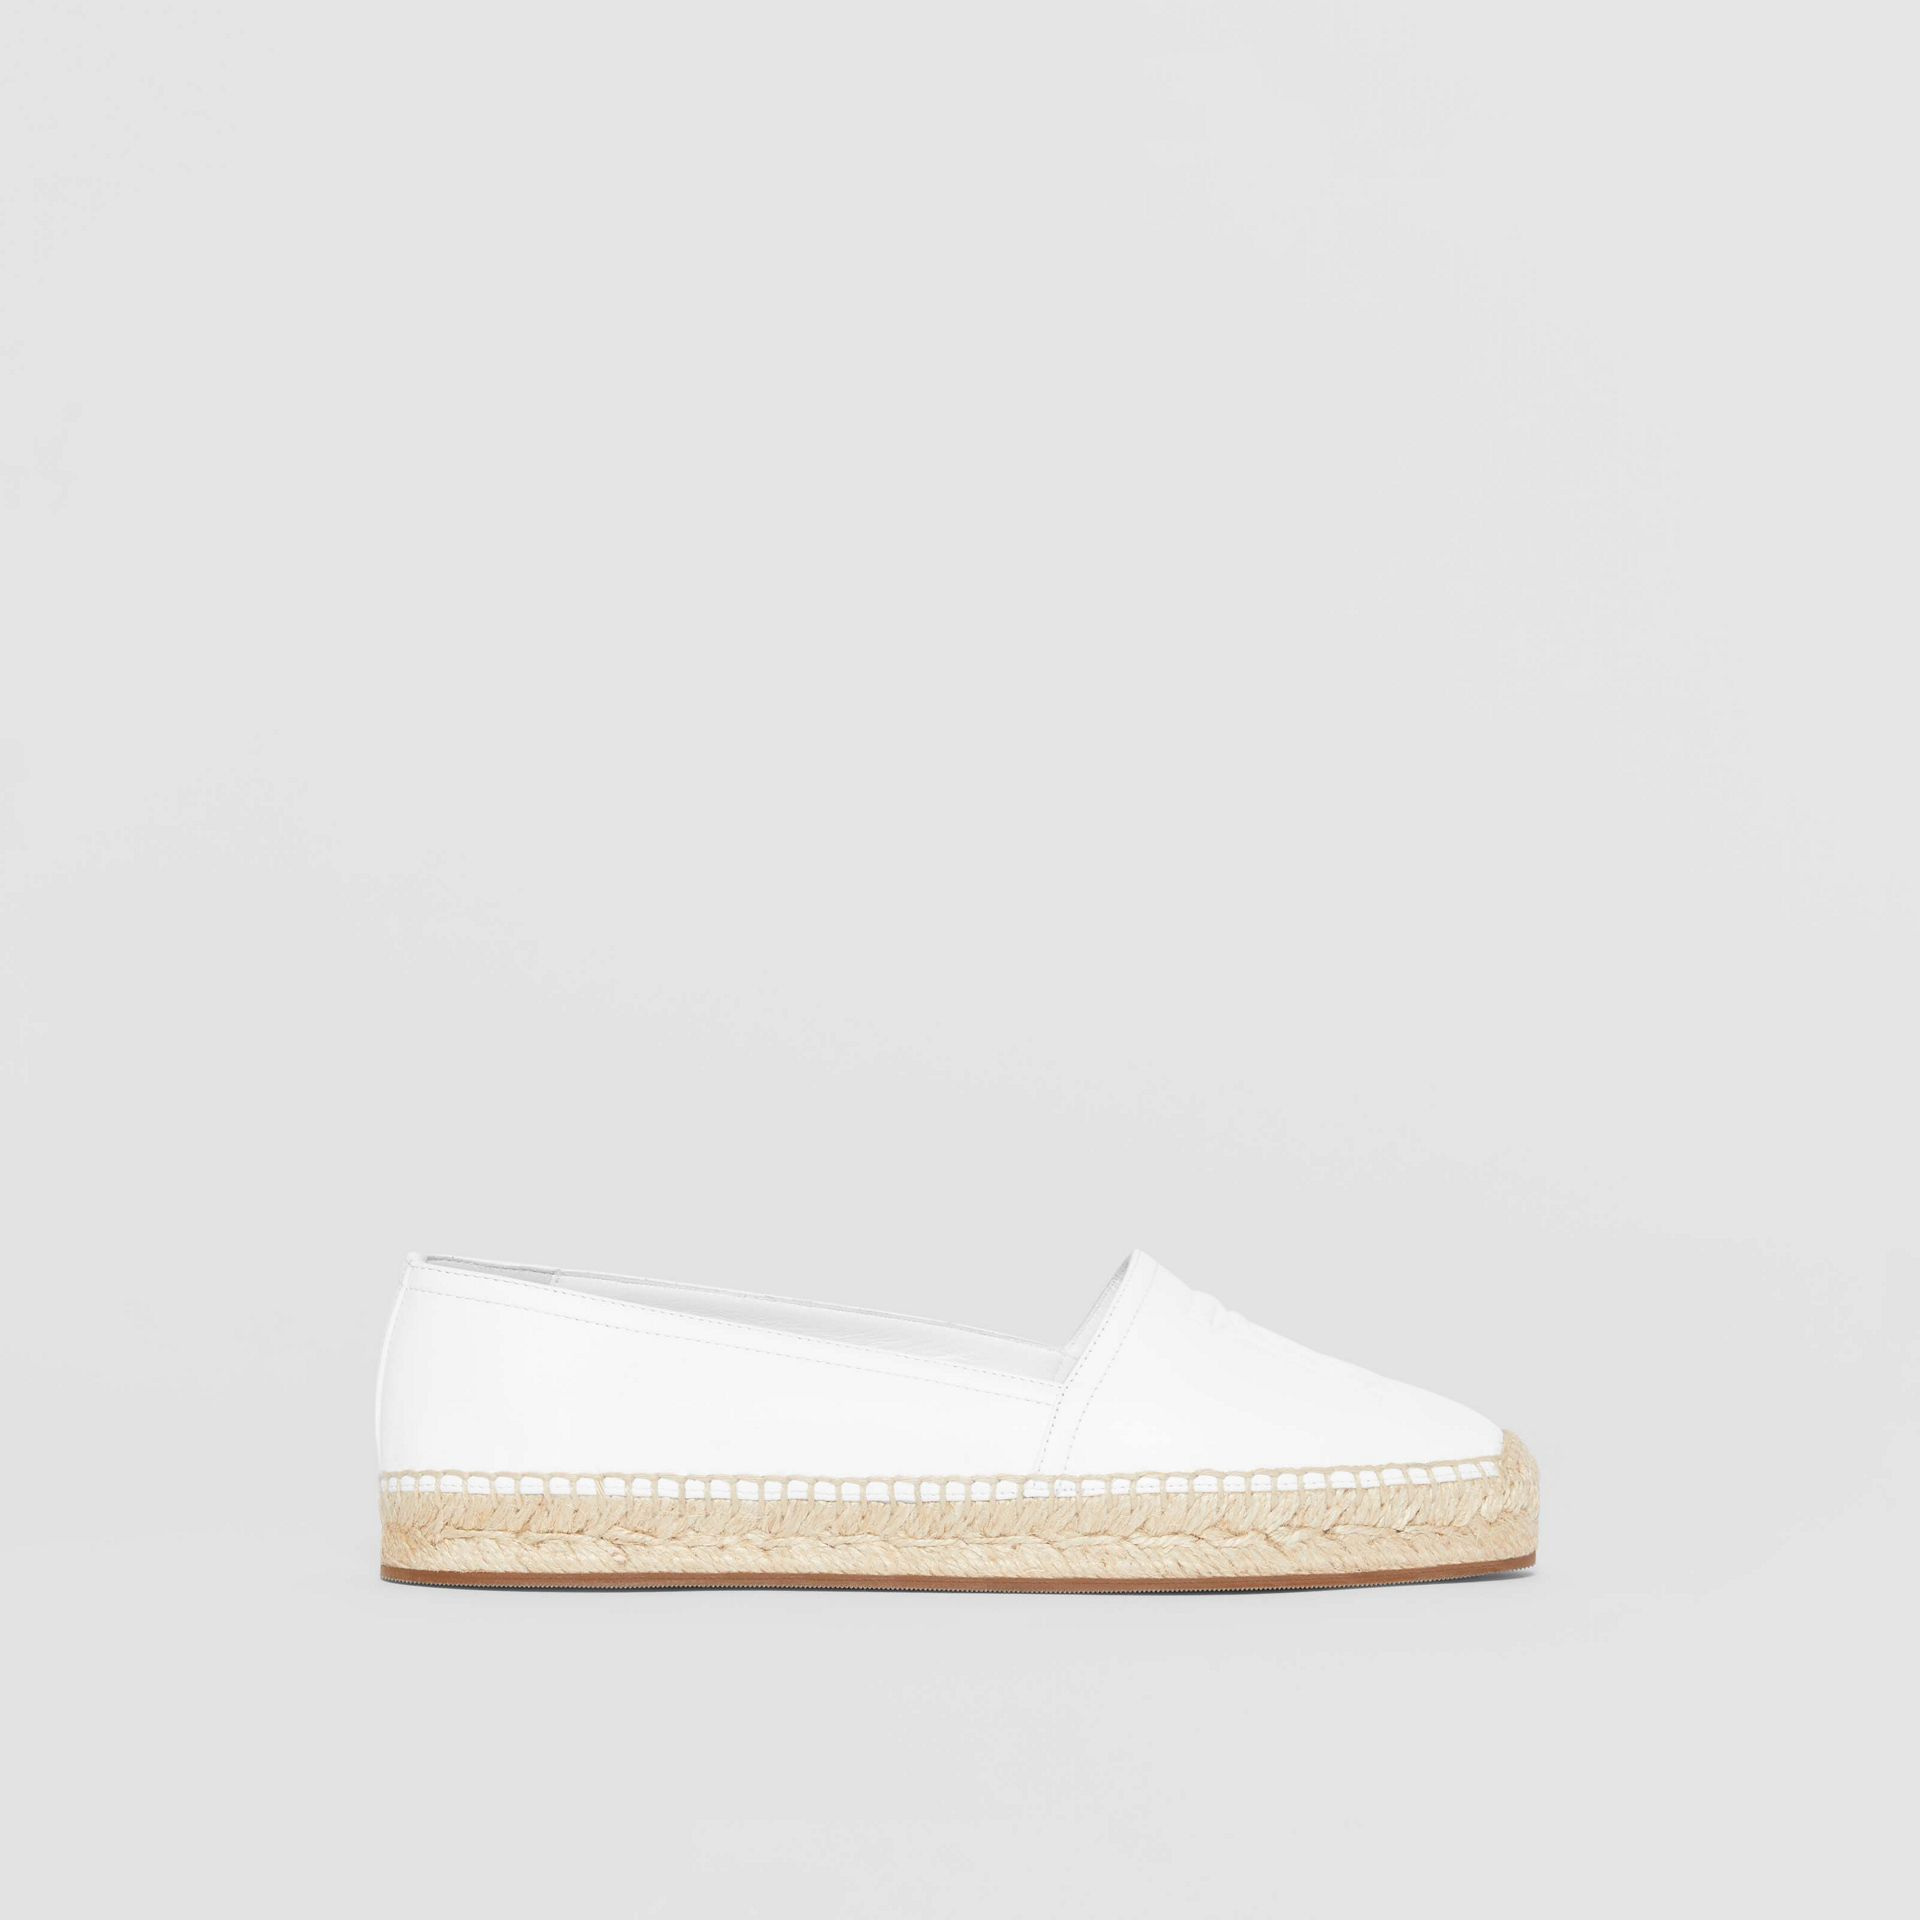 Monogram Motif Leather Espadrilles in White - Women | Burberry - gallery image 5